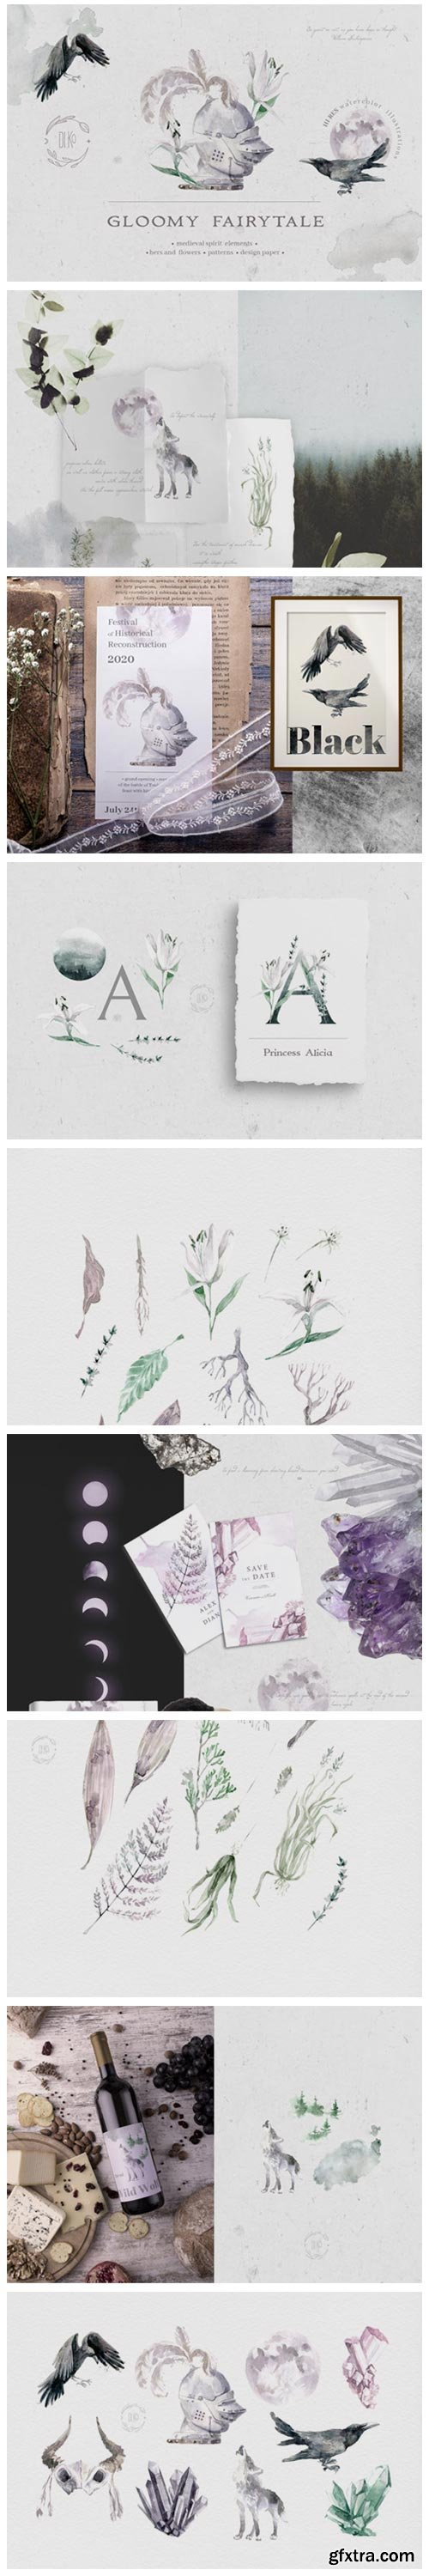 Gloomy Fairytale Graphic Collection 2915402